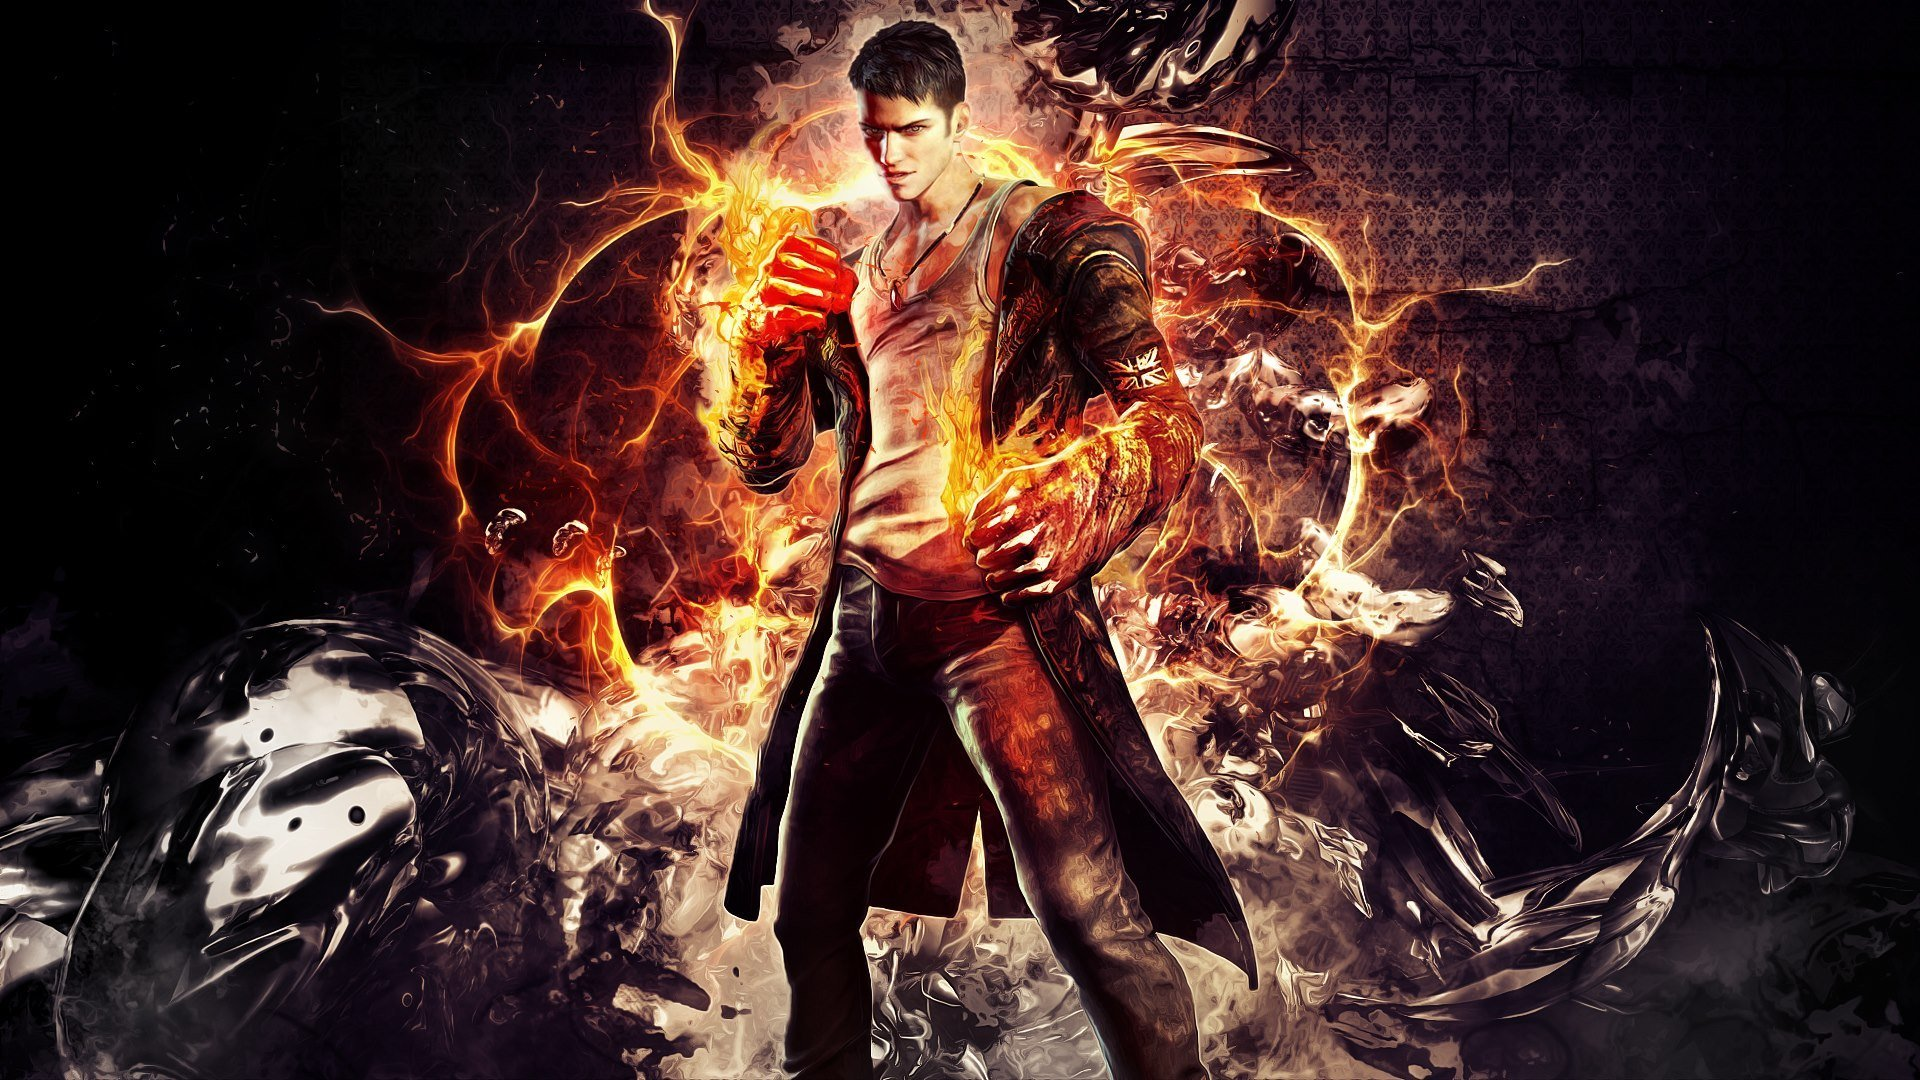 Free Download Devil May Cry Wallpaper 4 1920x1080 For Your